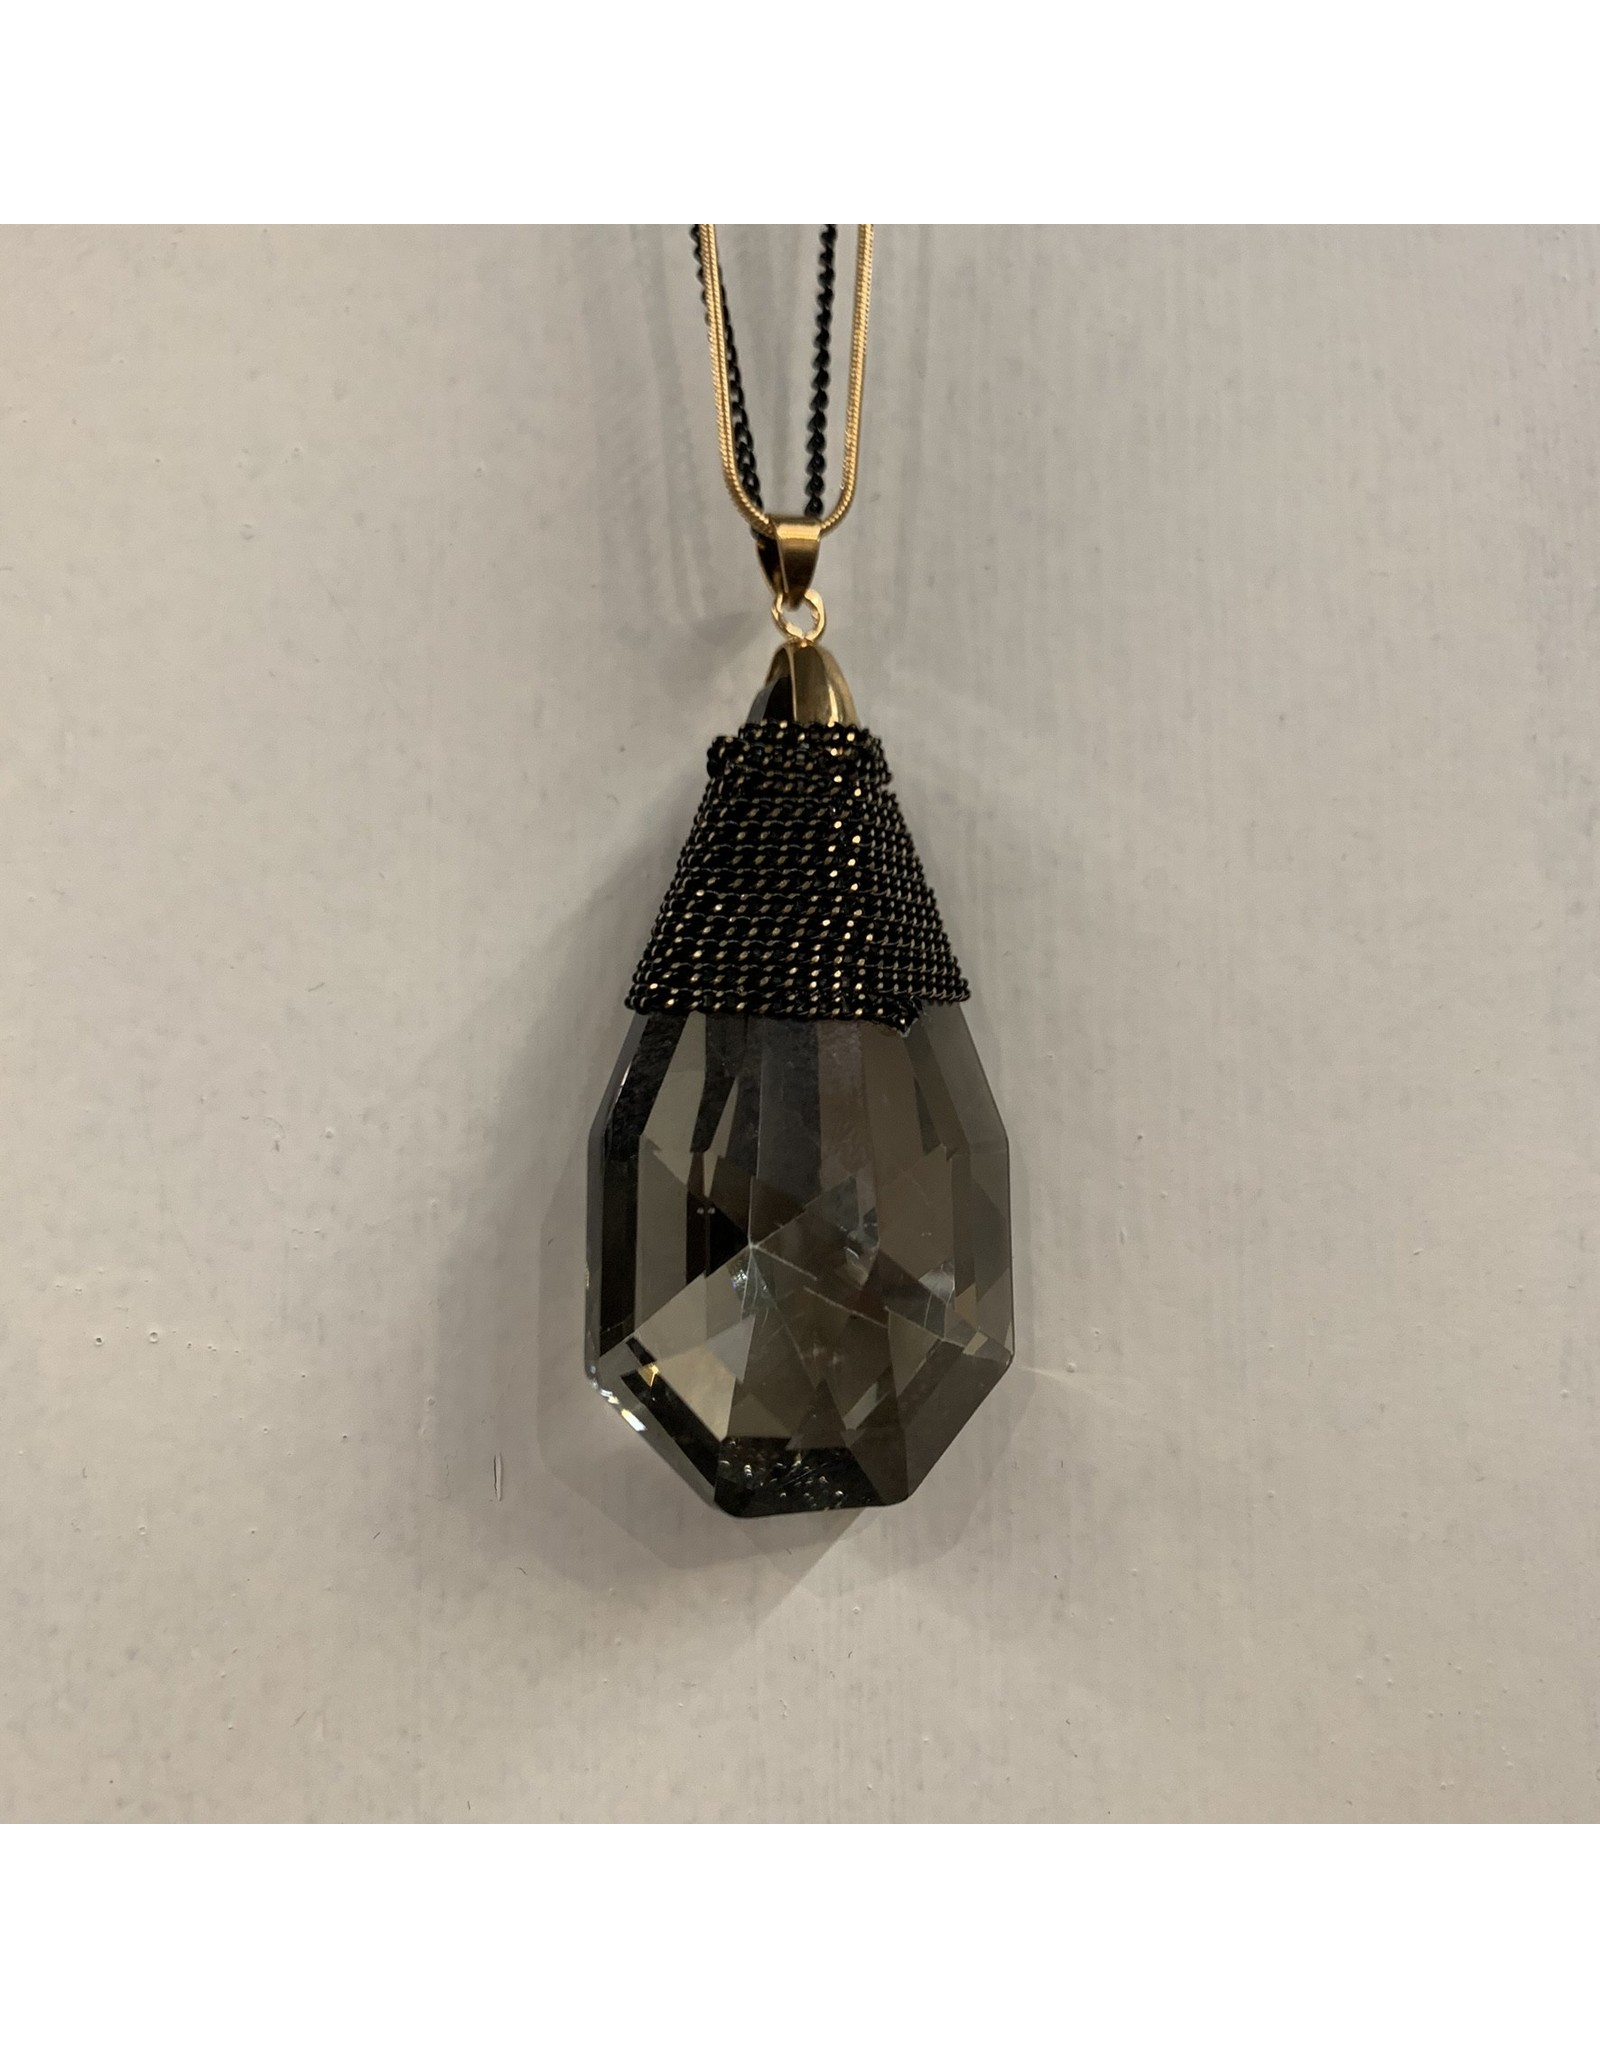 BLACK / GOLD DOUBLE CHAIN NECKLACE WITH SHORT GLASS PENDANT